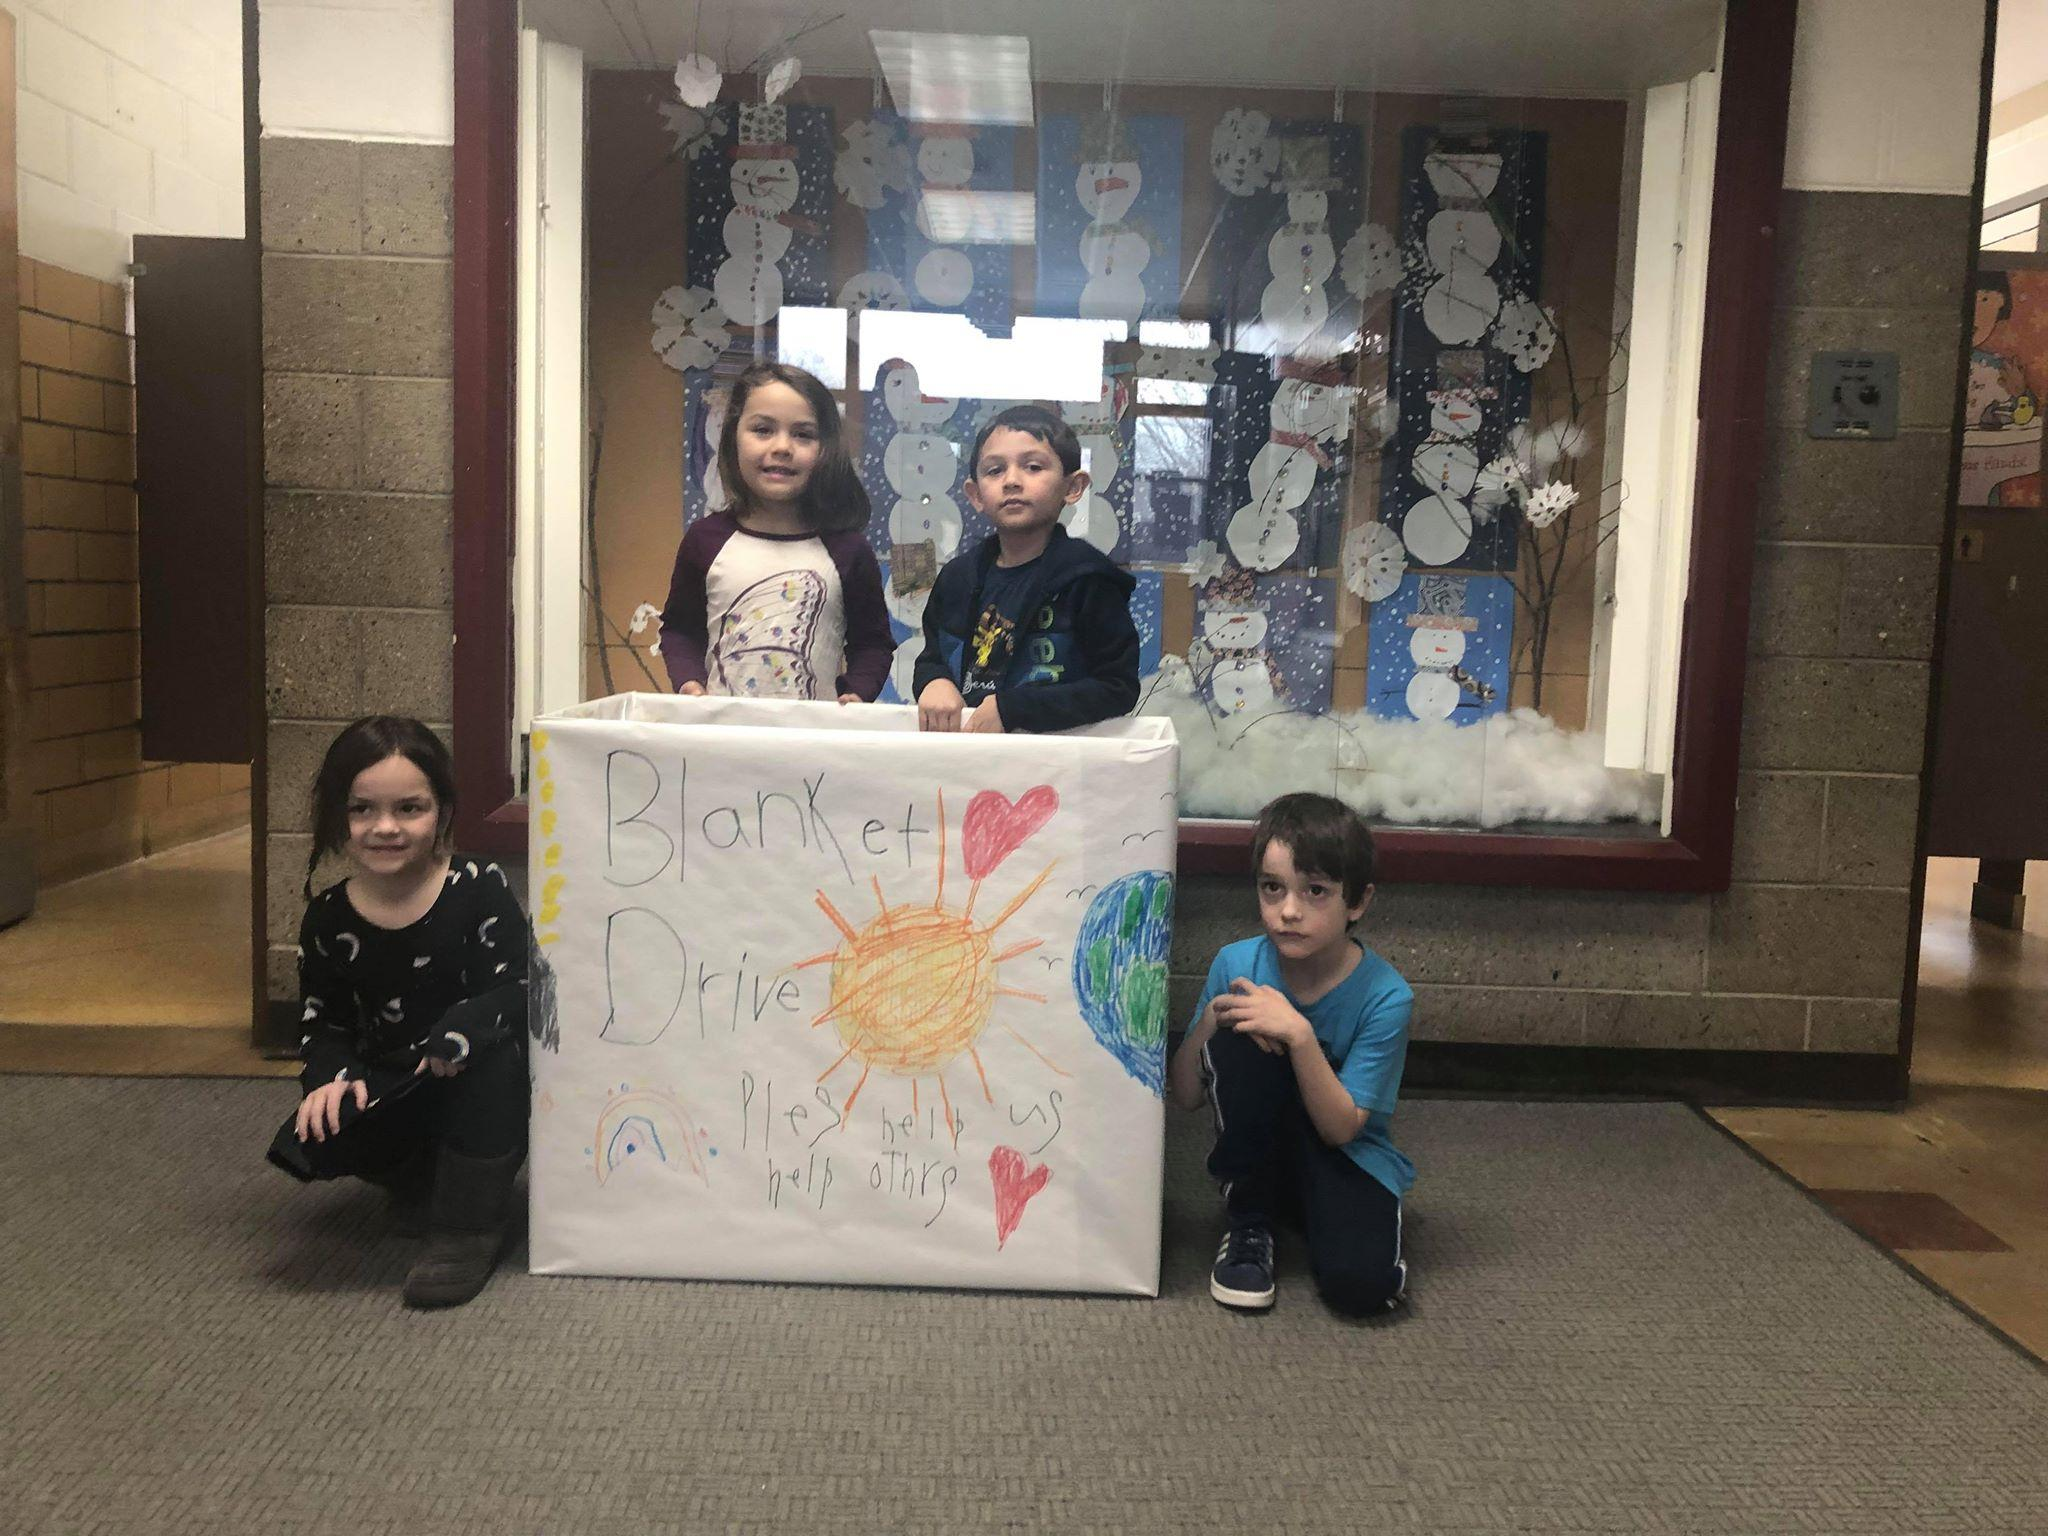 """four kindergarten students posing with a collection box that says """"Blanket drive - Please help us help others"""""""